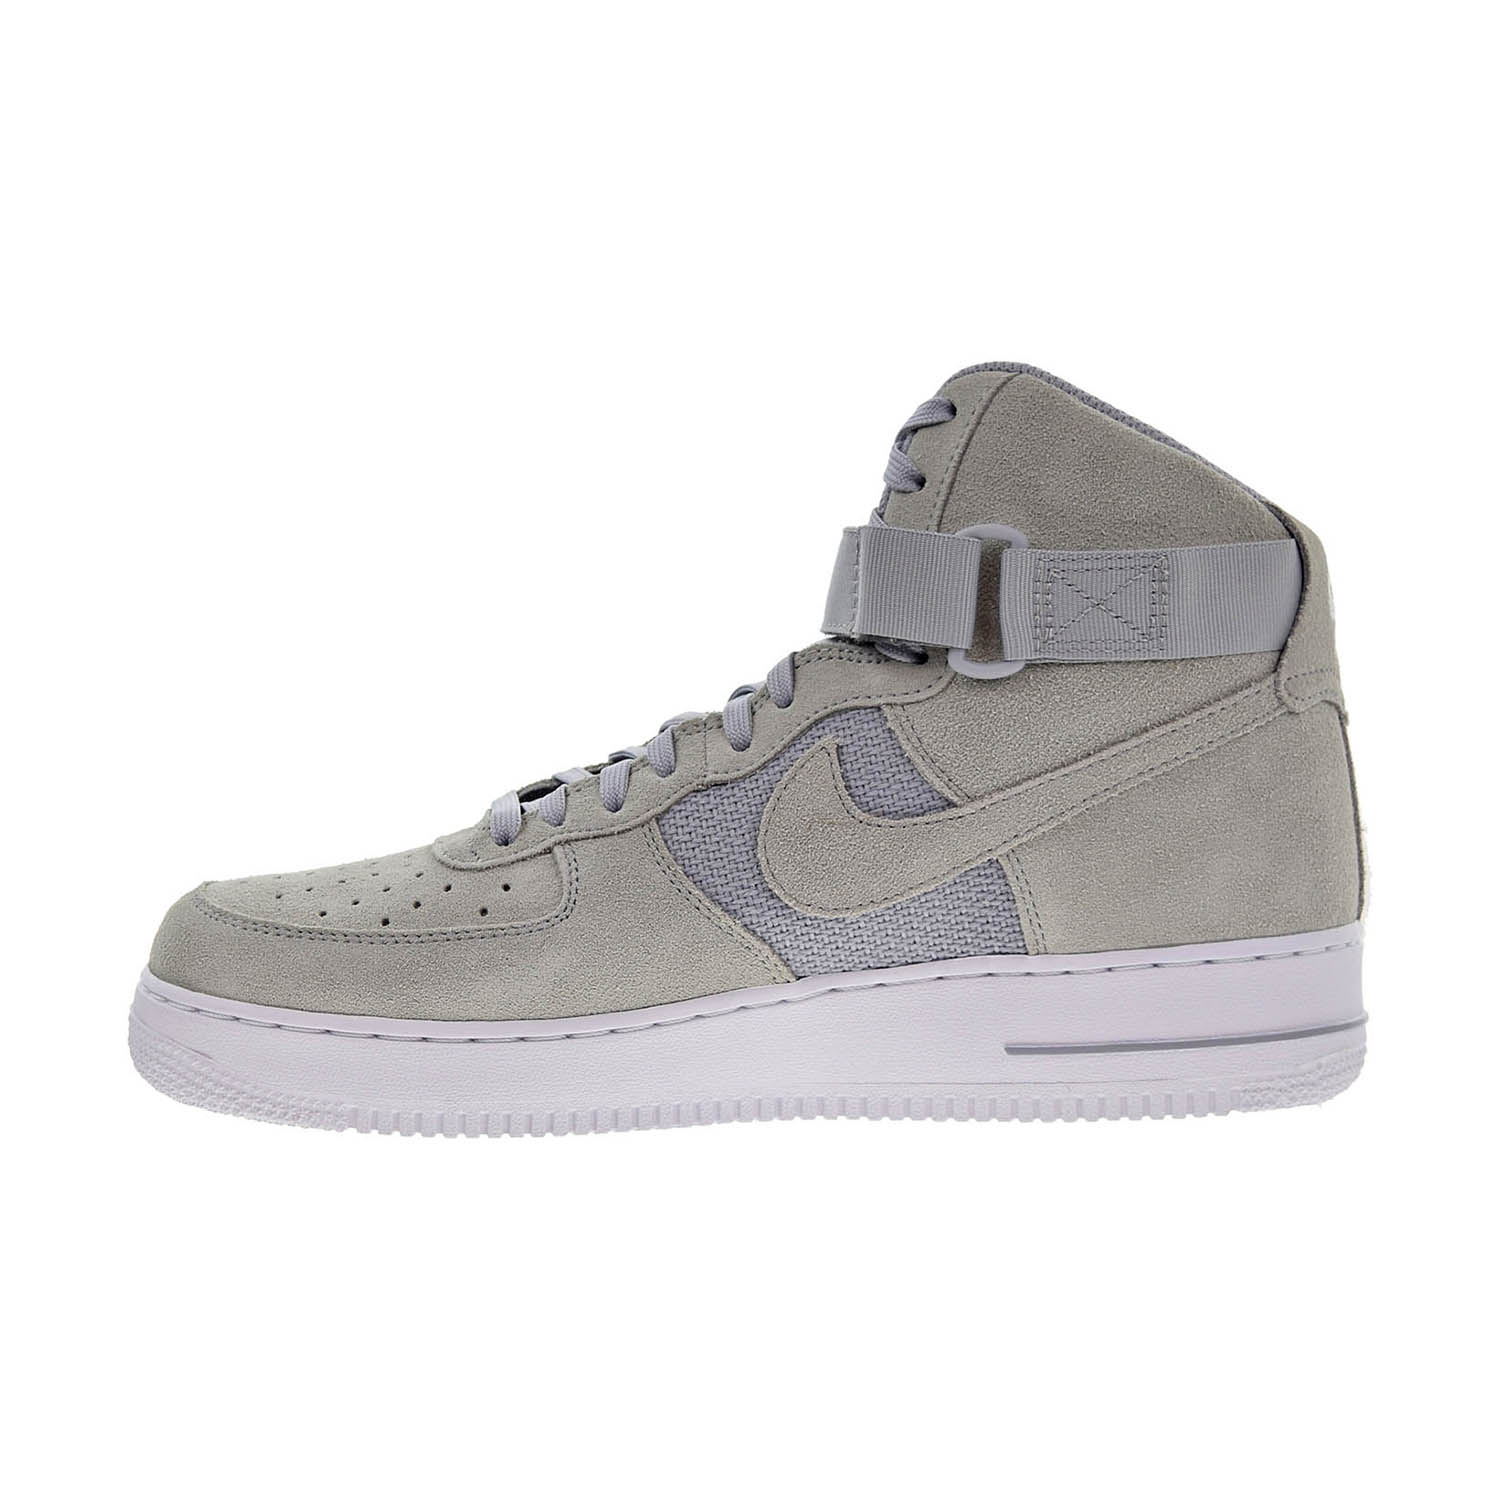 Nike AIR FORCE 1 HIGH 07